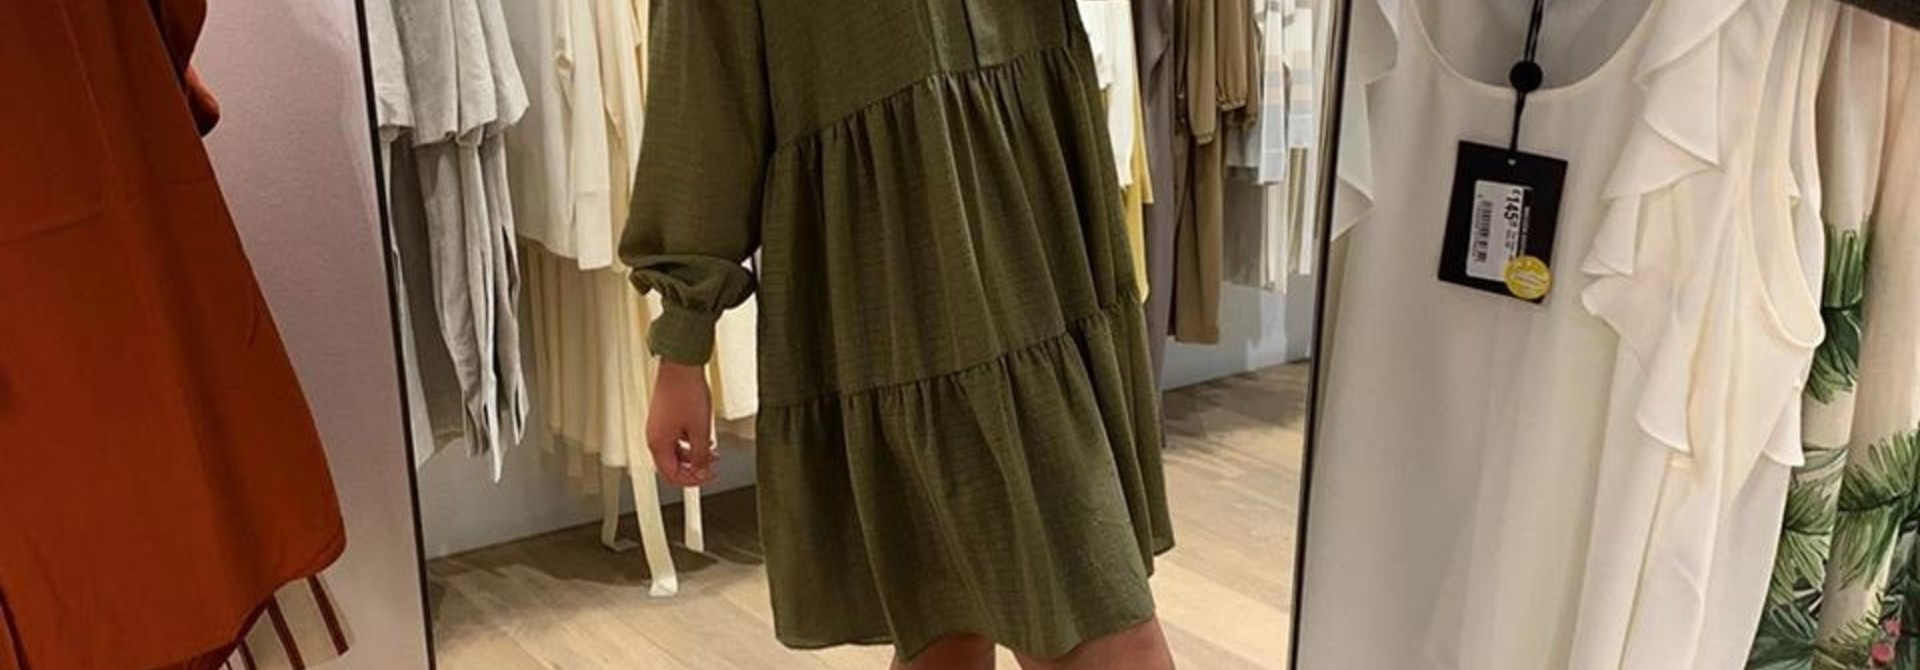 Margot shirt dress Samsoe Samsoe